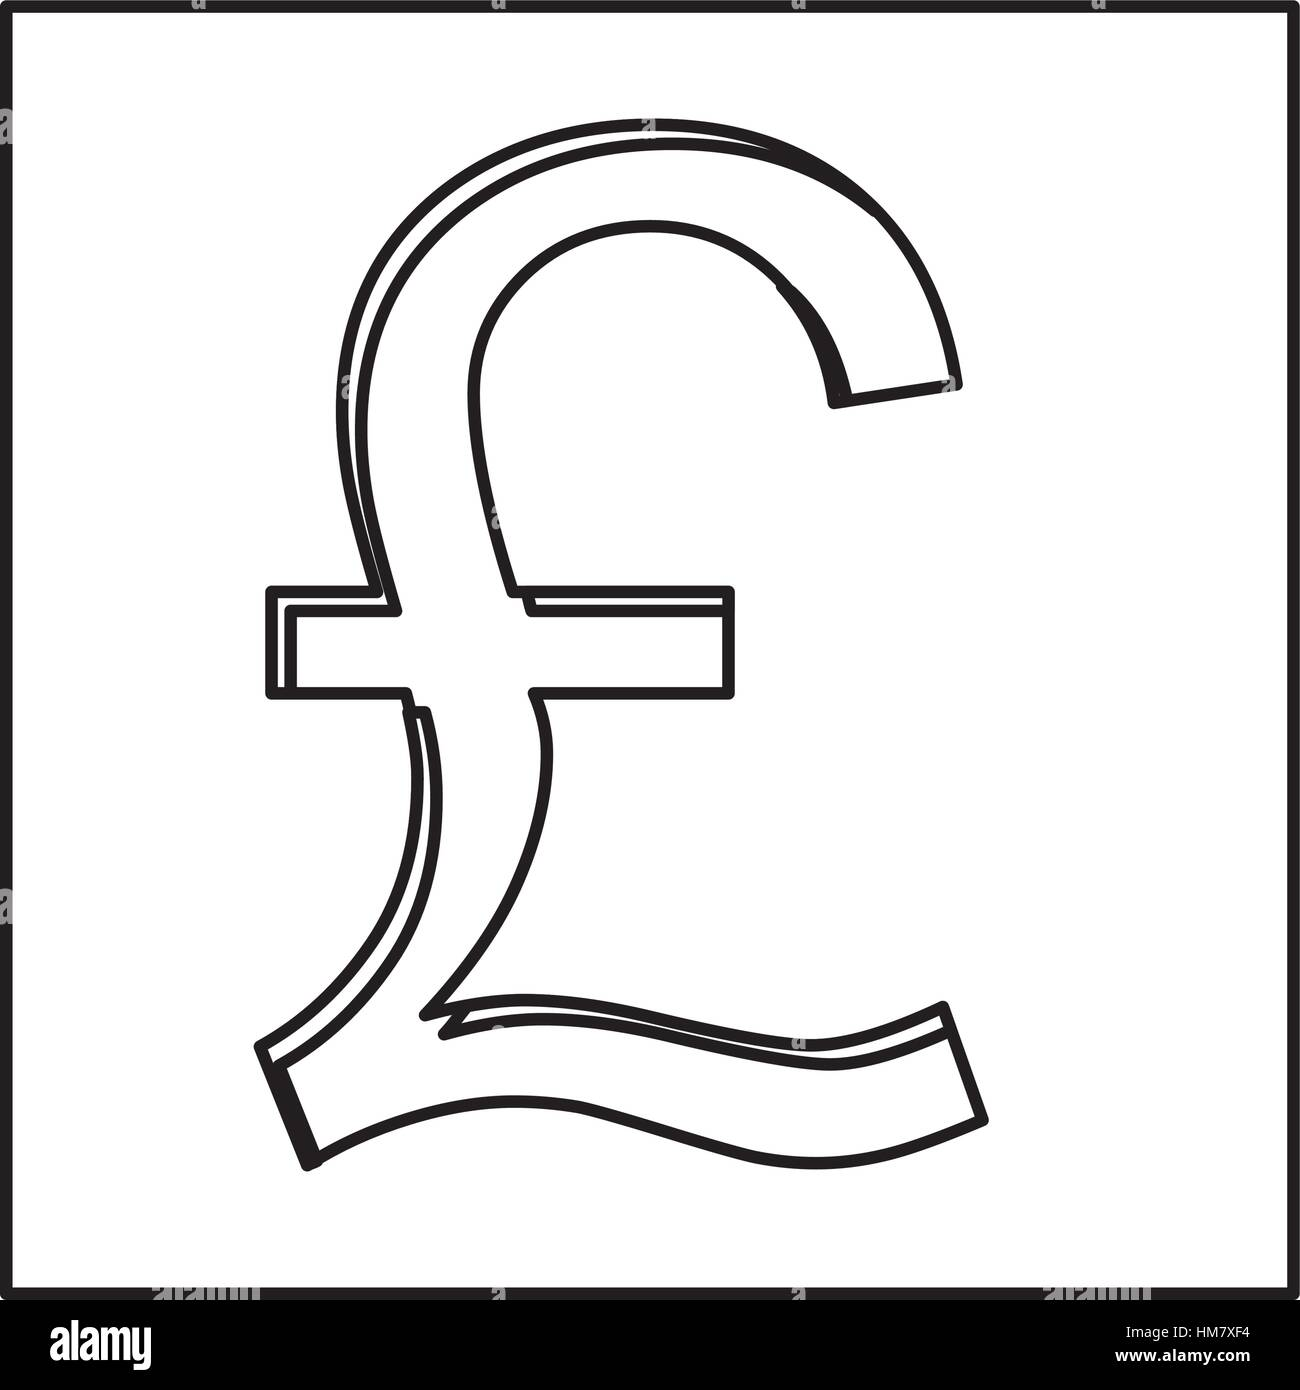 Monochrome Contour With Currency Symbol Of Sterling Pound In Square